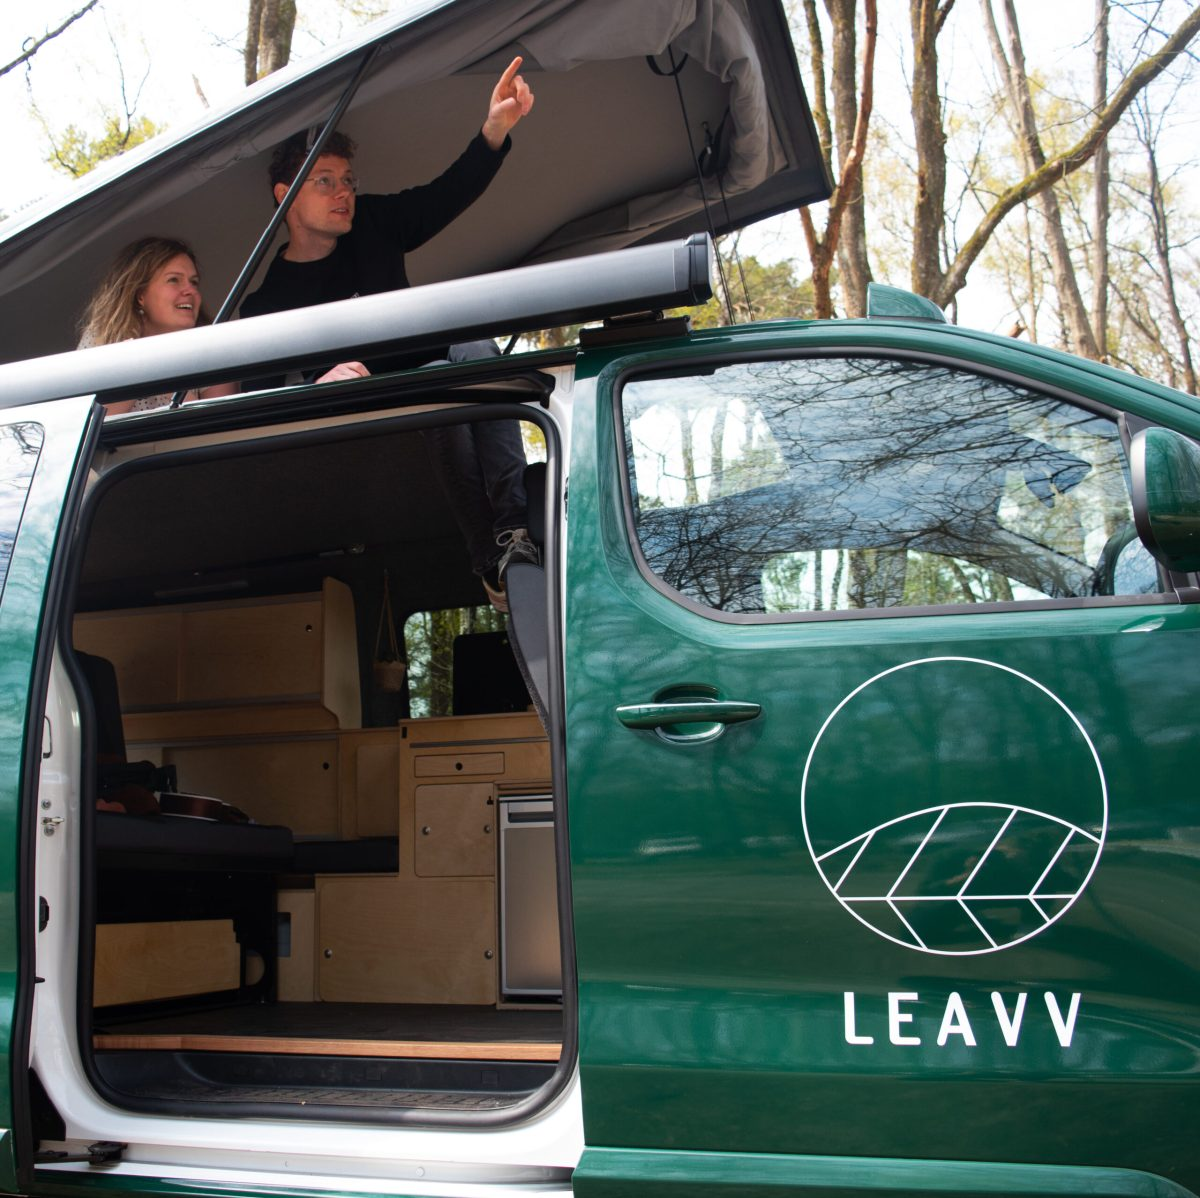 LEAVV campers